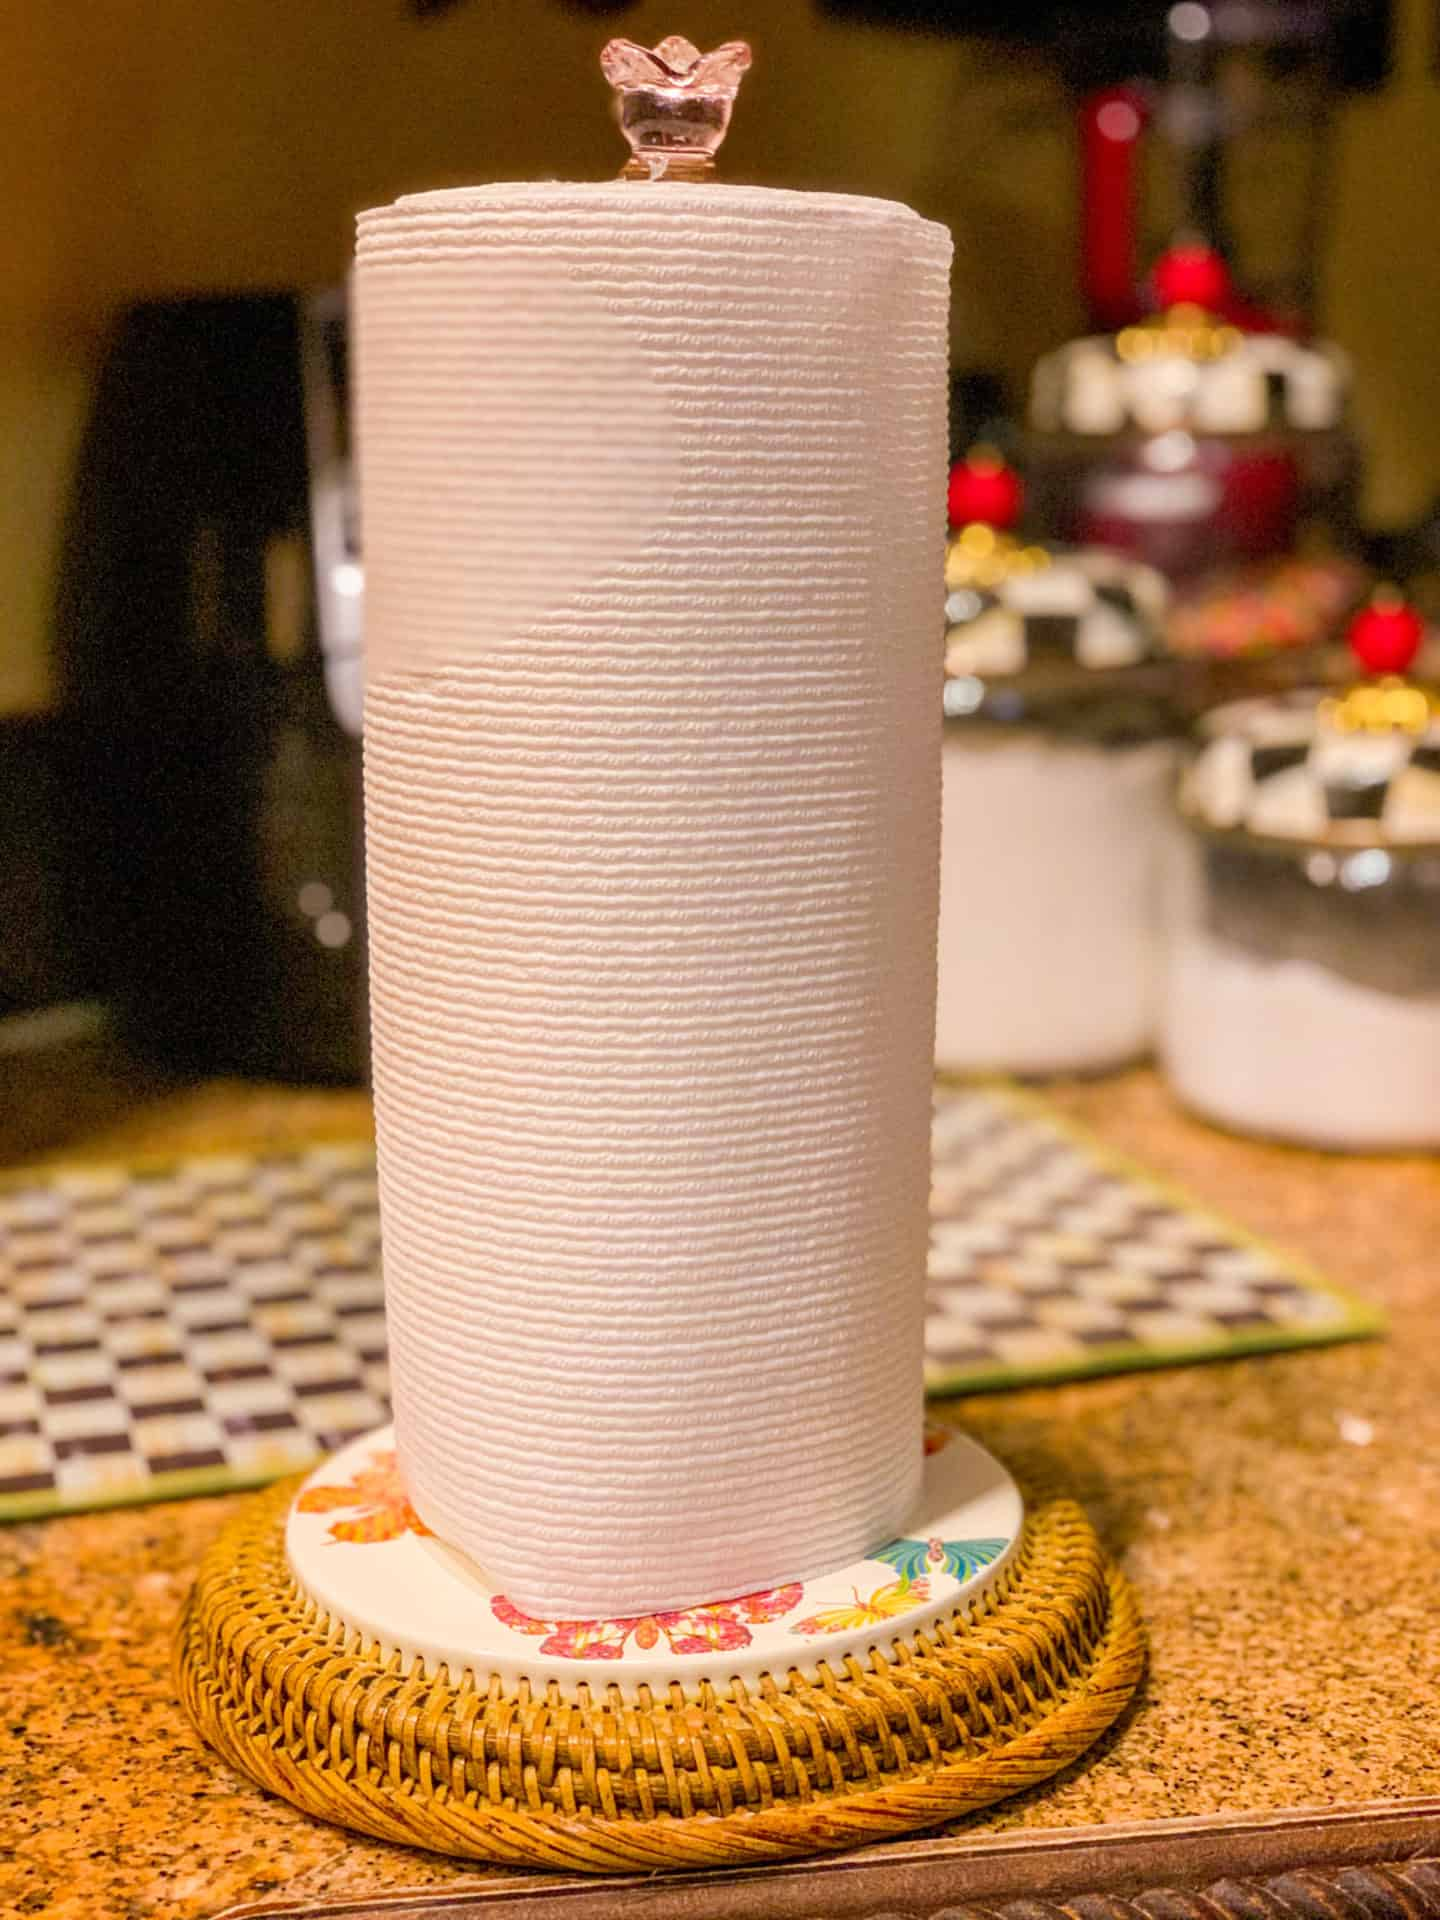 Stop Depleting Your Paper Towel Supply So Fast! Smart Ideas To Stretch Your Rolls